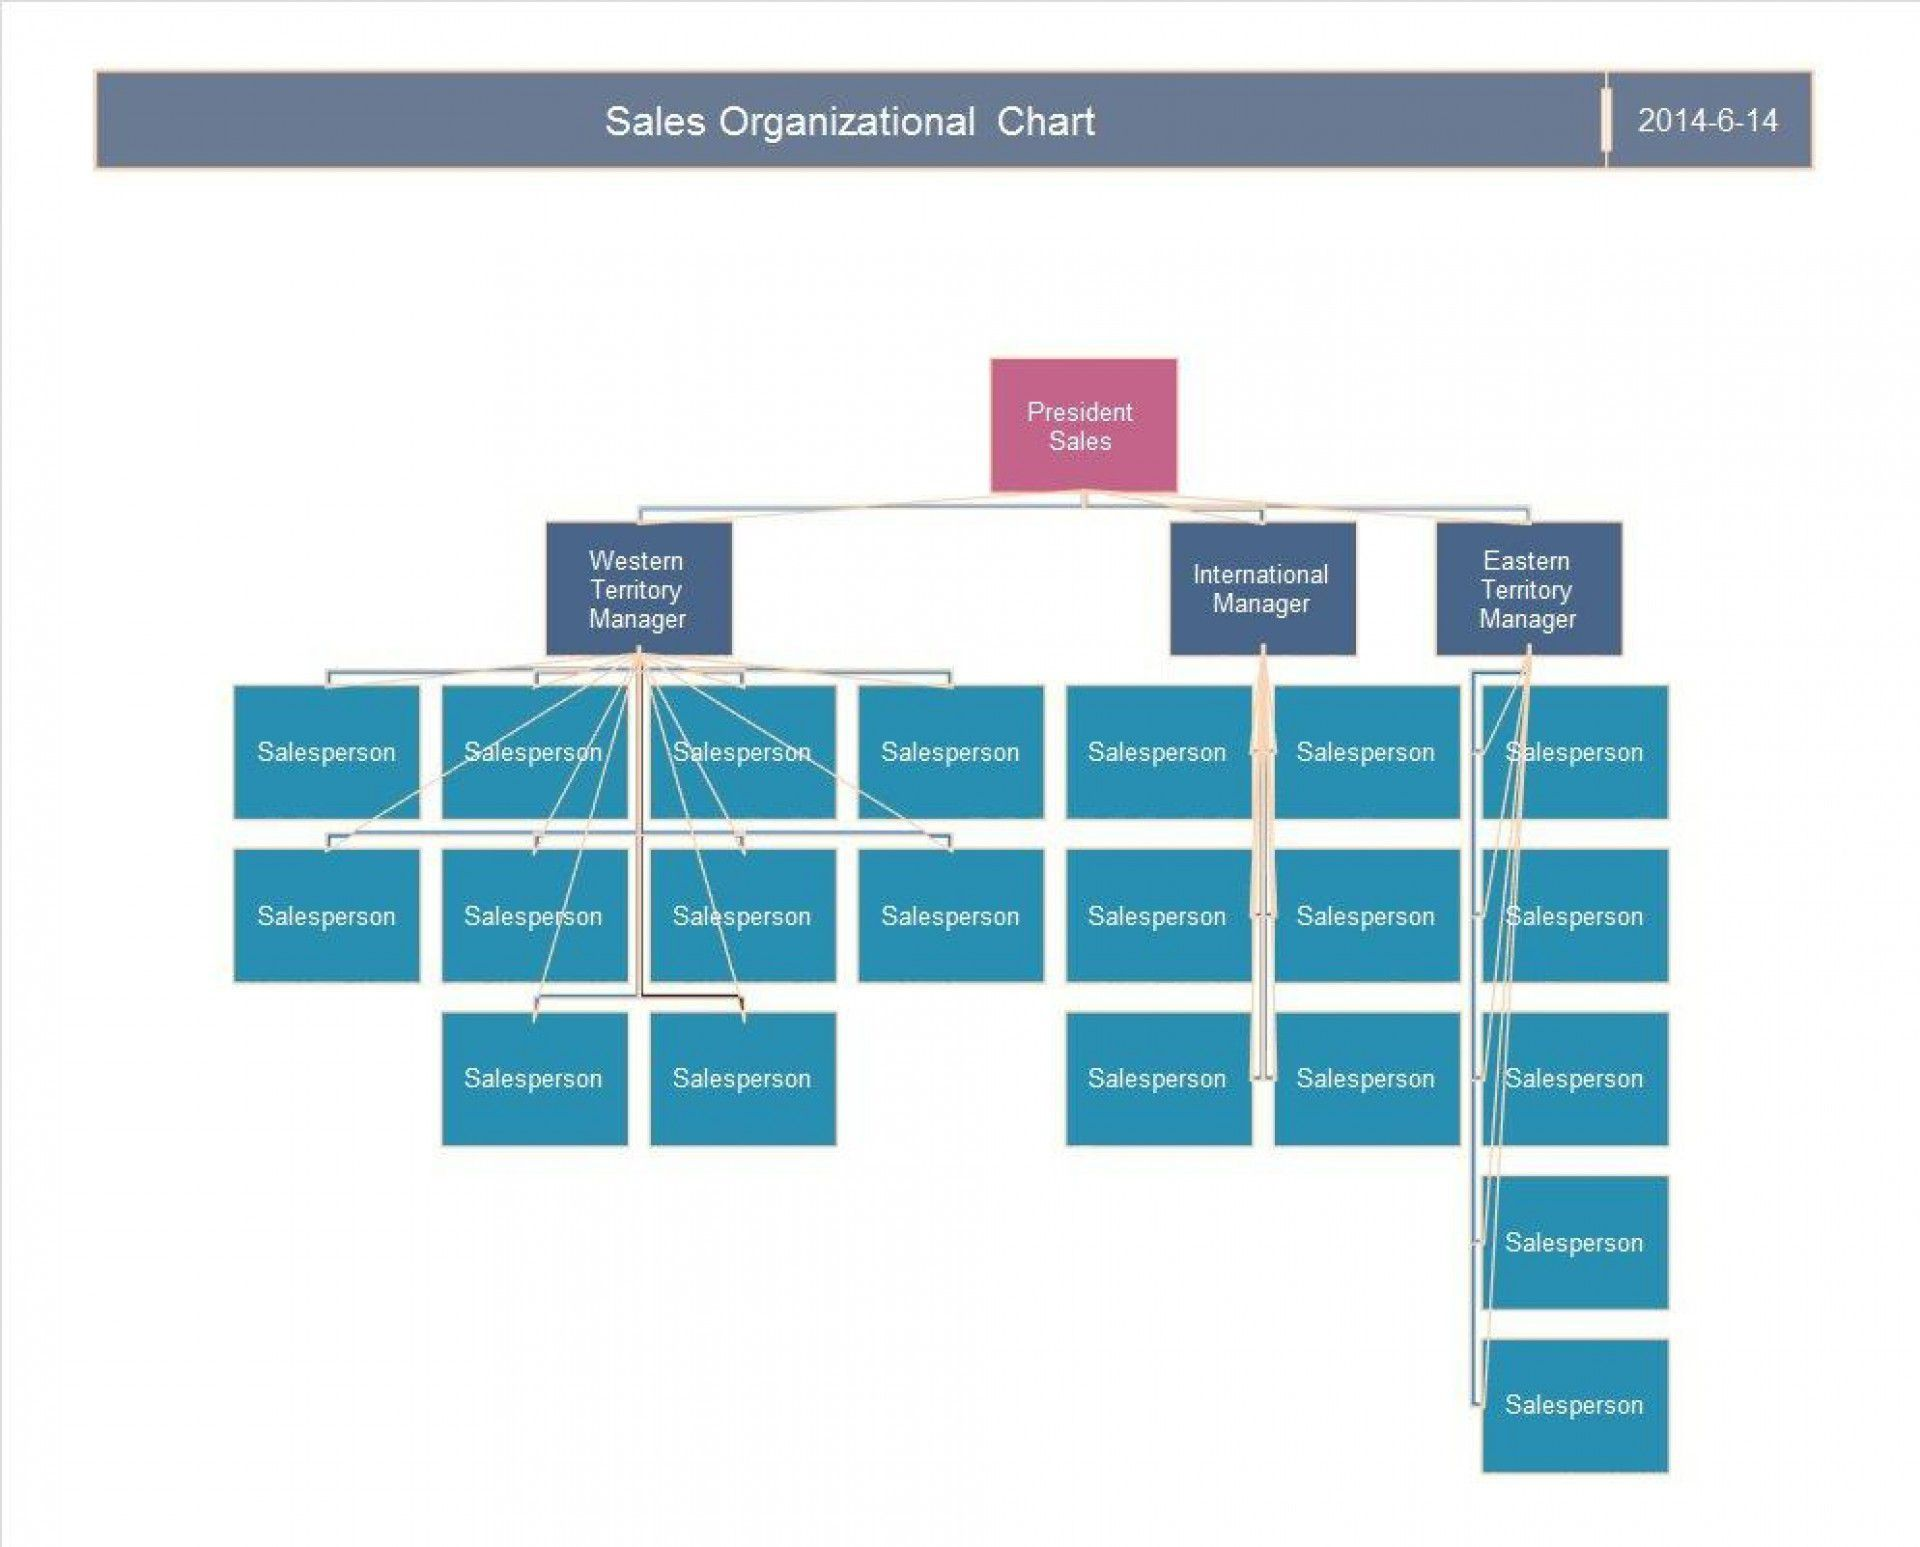 005 Striking Organization Chart Template Word 2013 Design  Organizational FreeFull